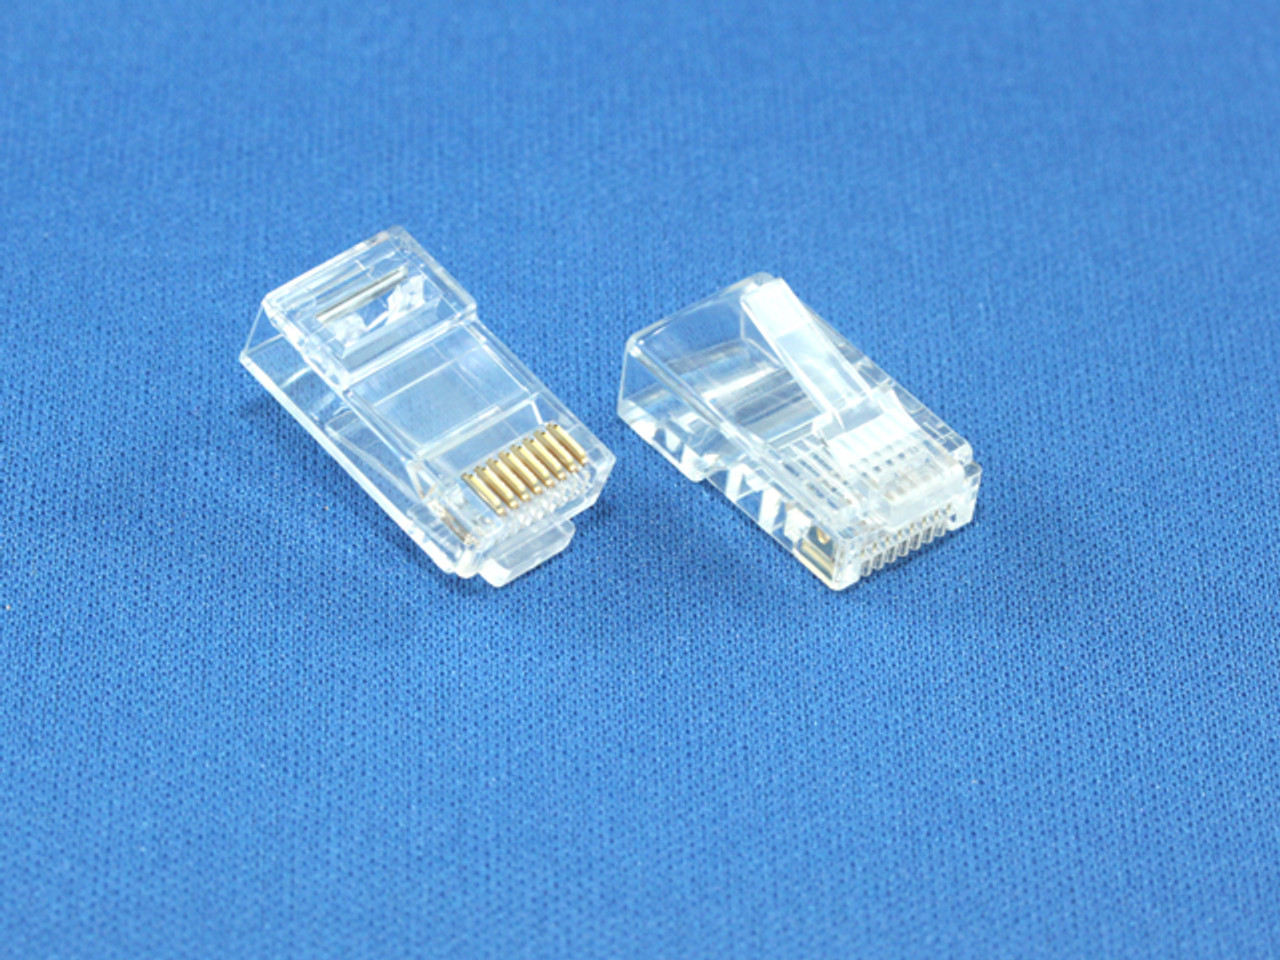 Product image for RJ-45 8P8C Connector For Cat5E Soild Cable | CX Computer Superstore